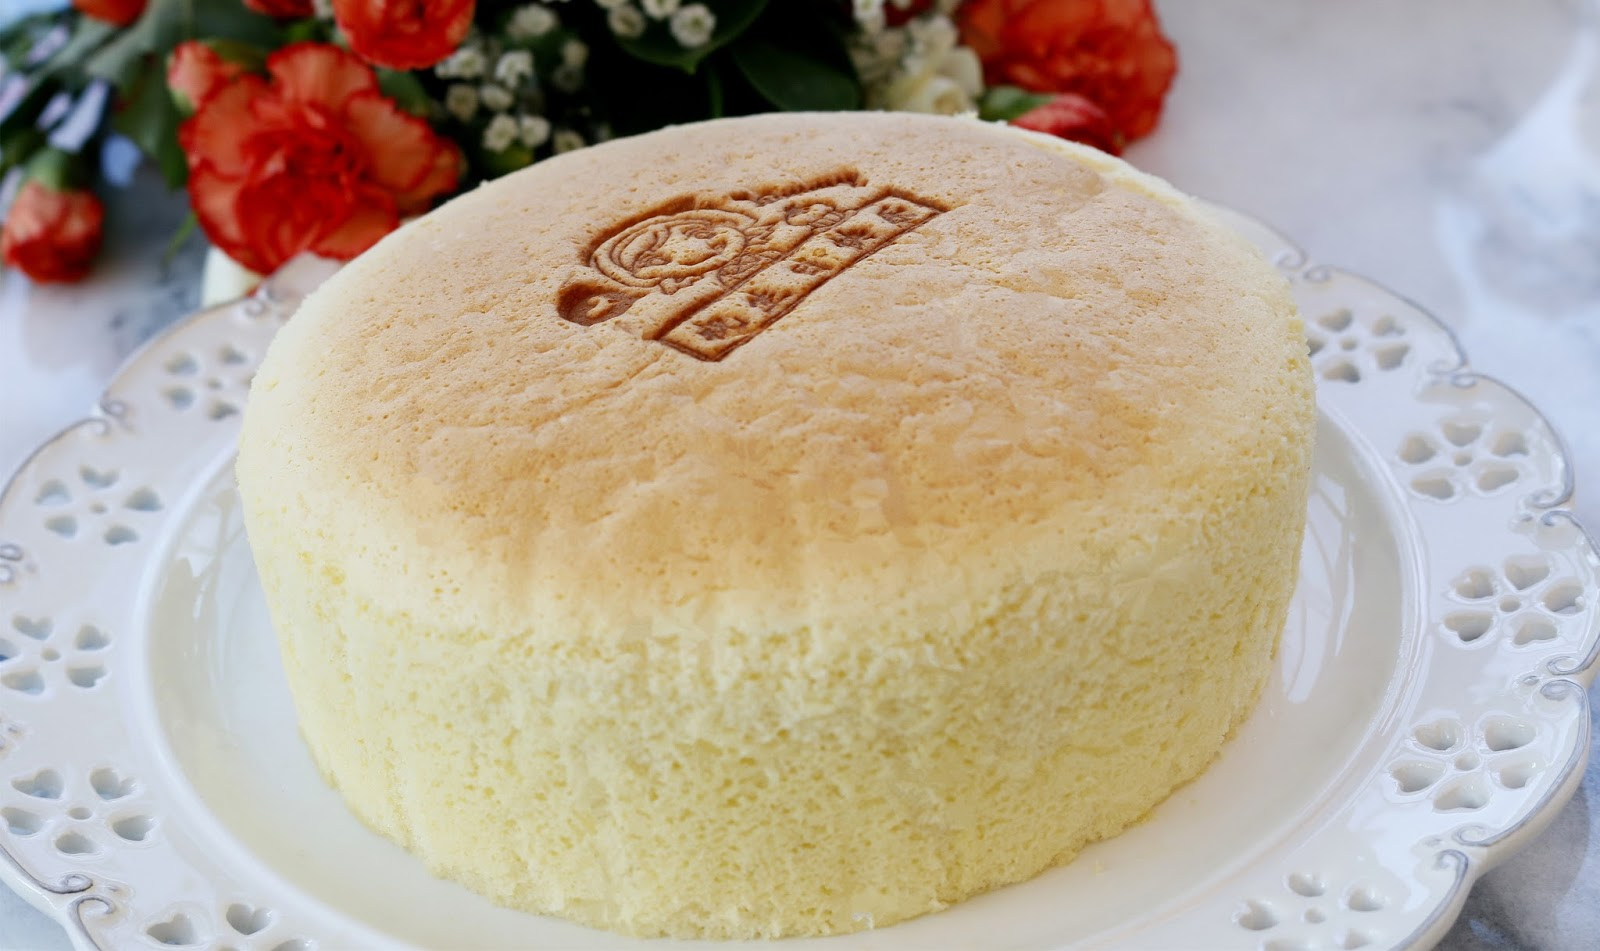 Cake Recipe Light And Fluffy: Josephine's Recipes : Vanilla Sponge Cake Recipe